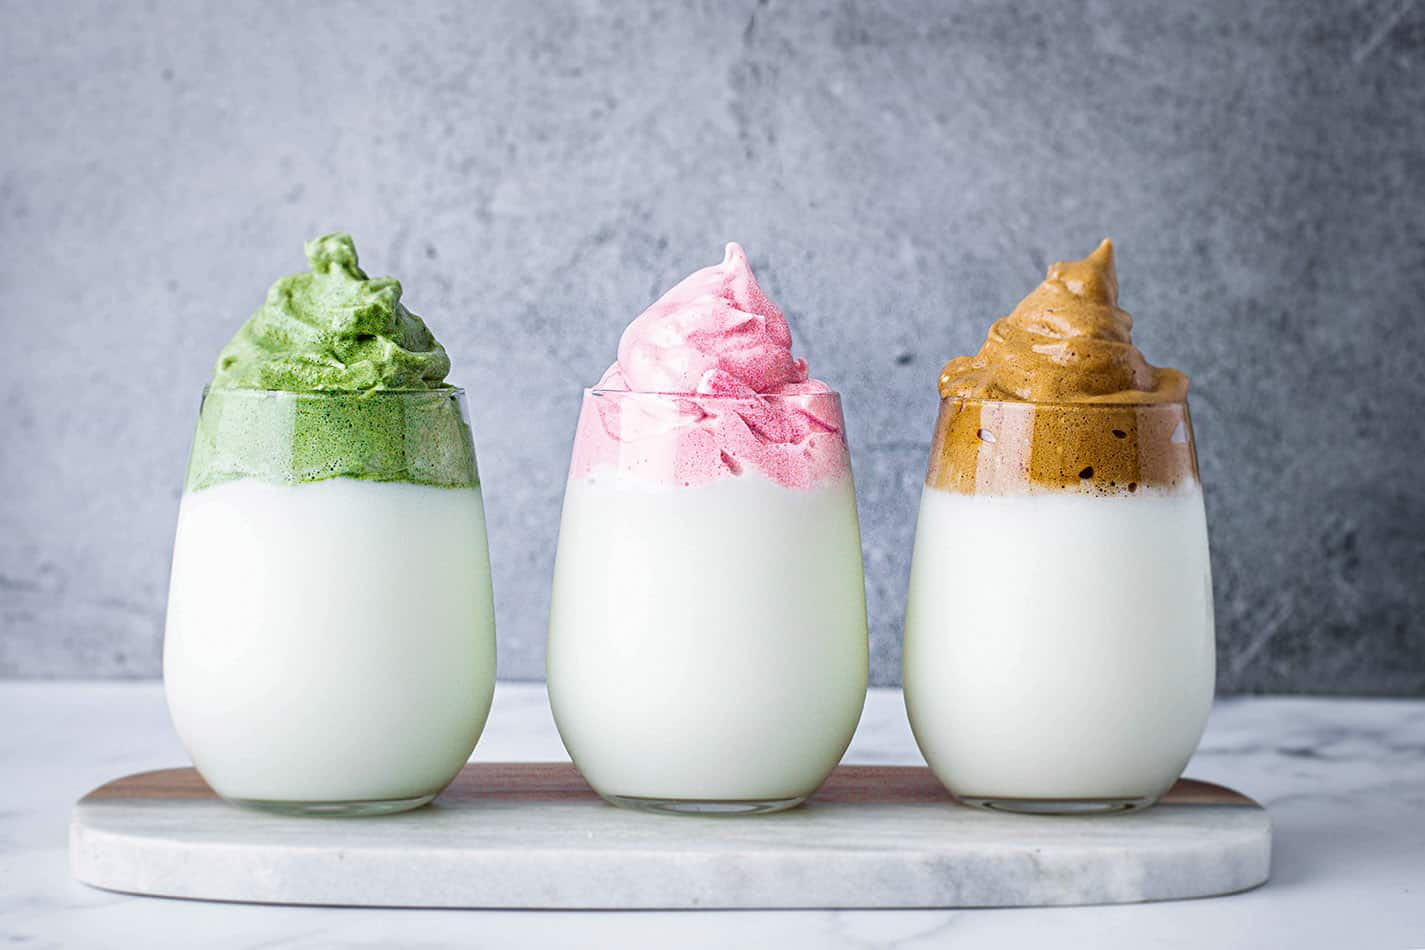 3 glasses filled with milk and whipped matcha, strawberry, and coffee on marble and grey surface.